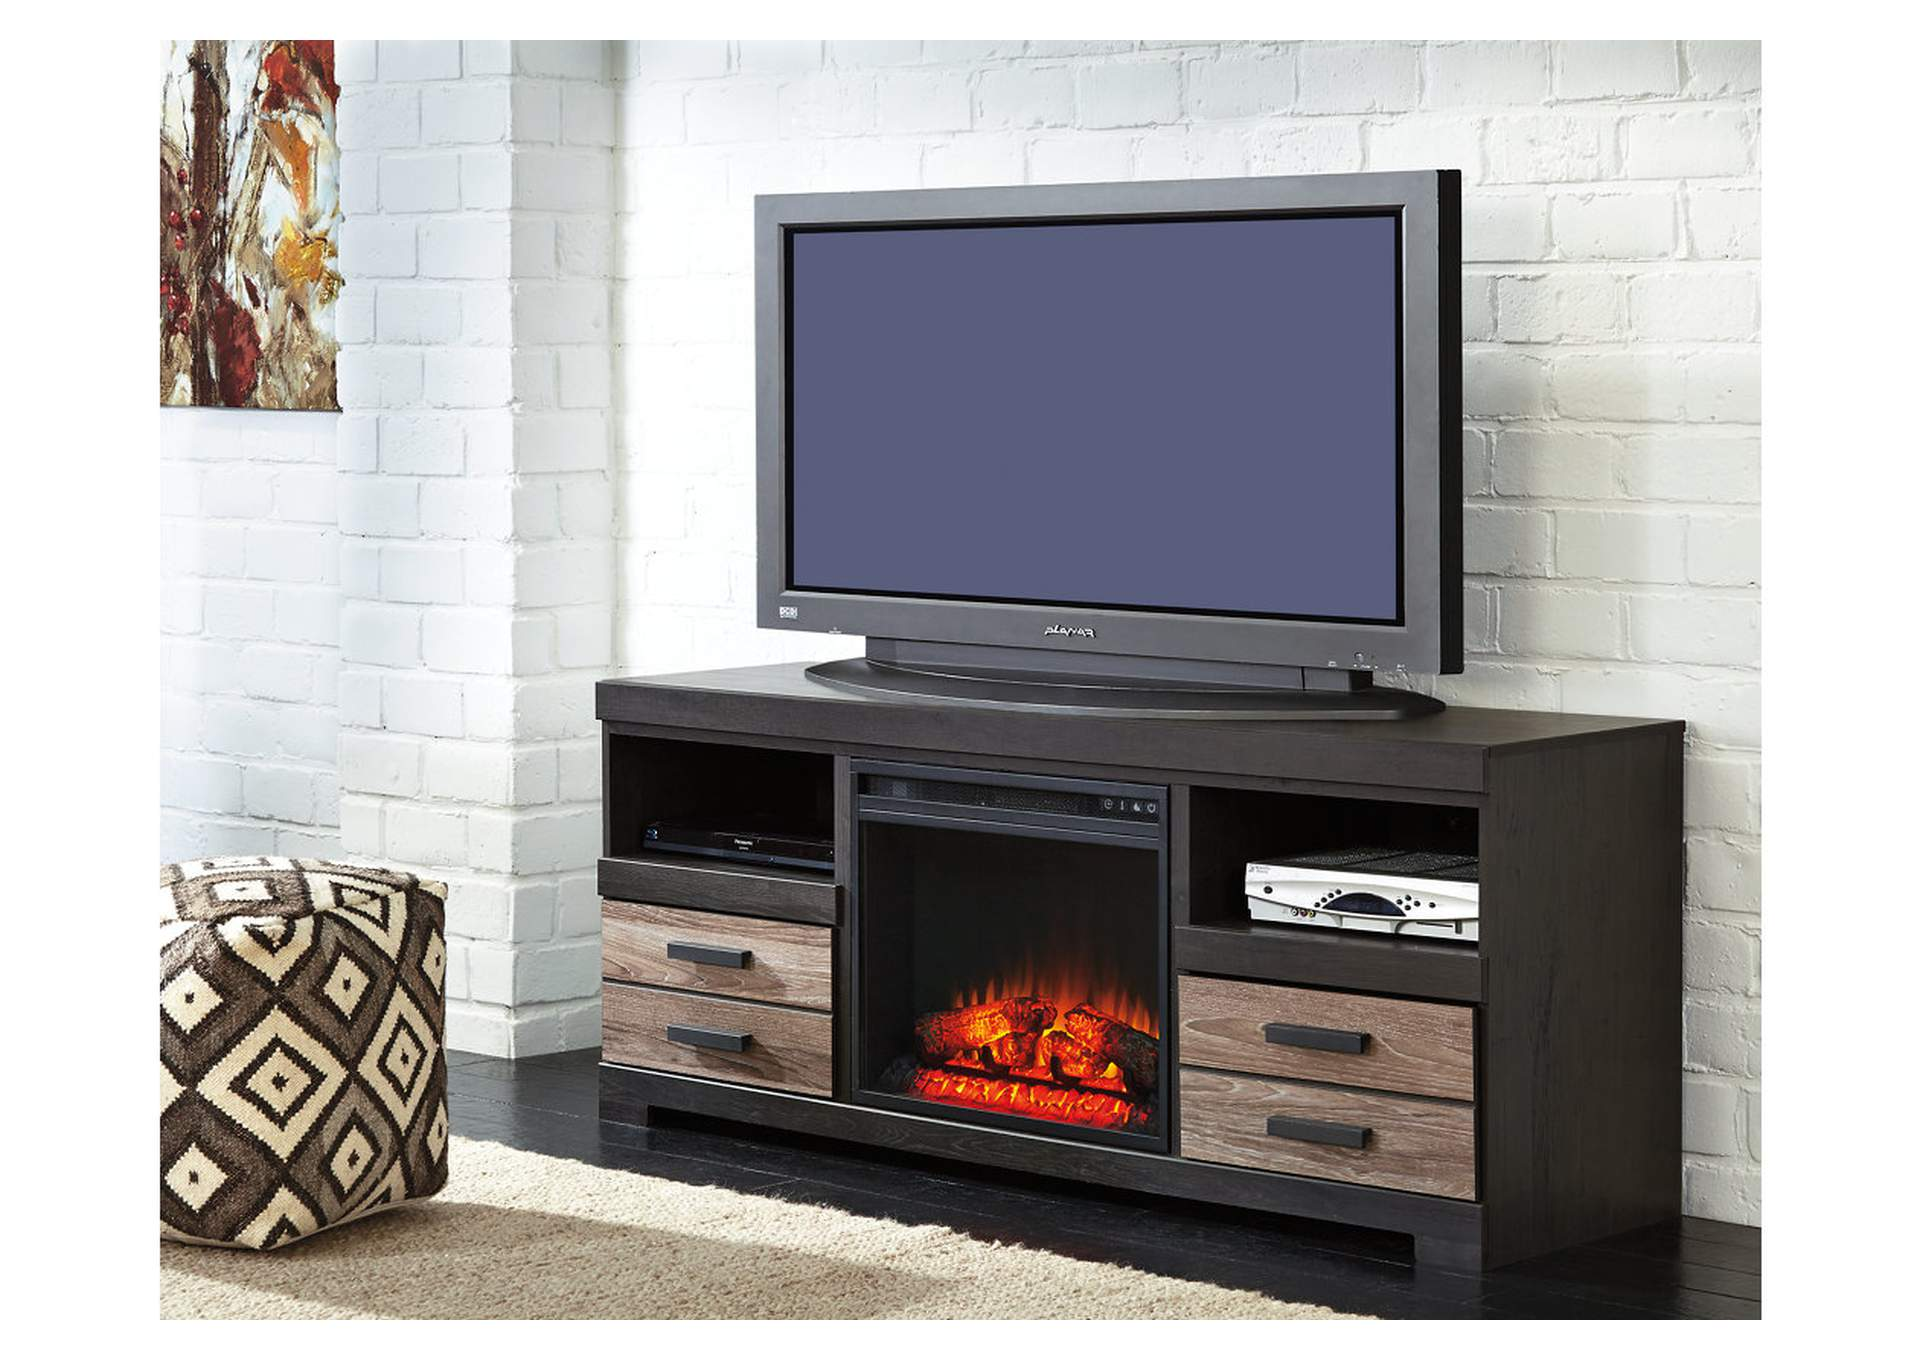 Harlinton Large TV Stand w/LED Fireplace Insert,Signature Design By Ashley